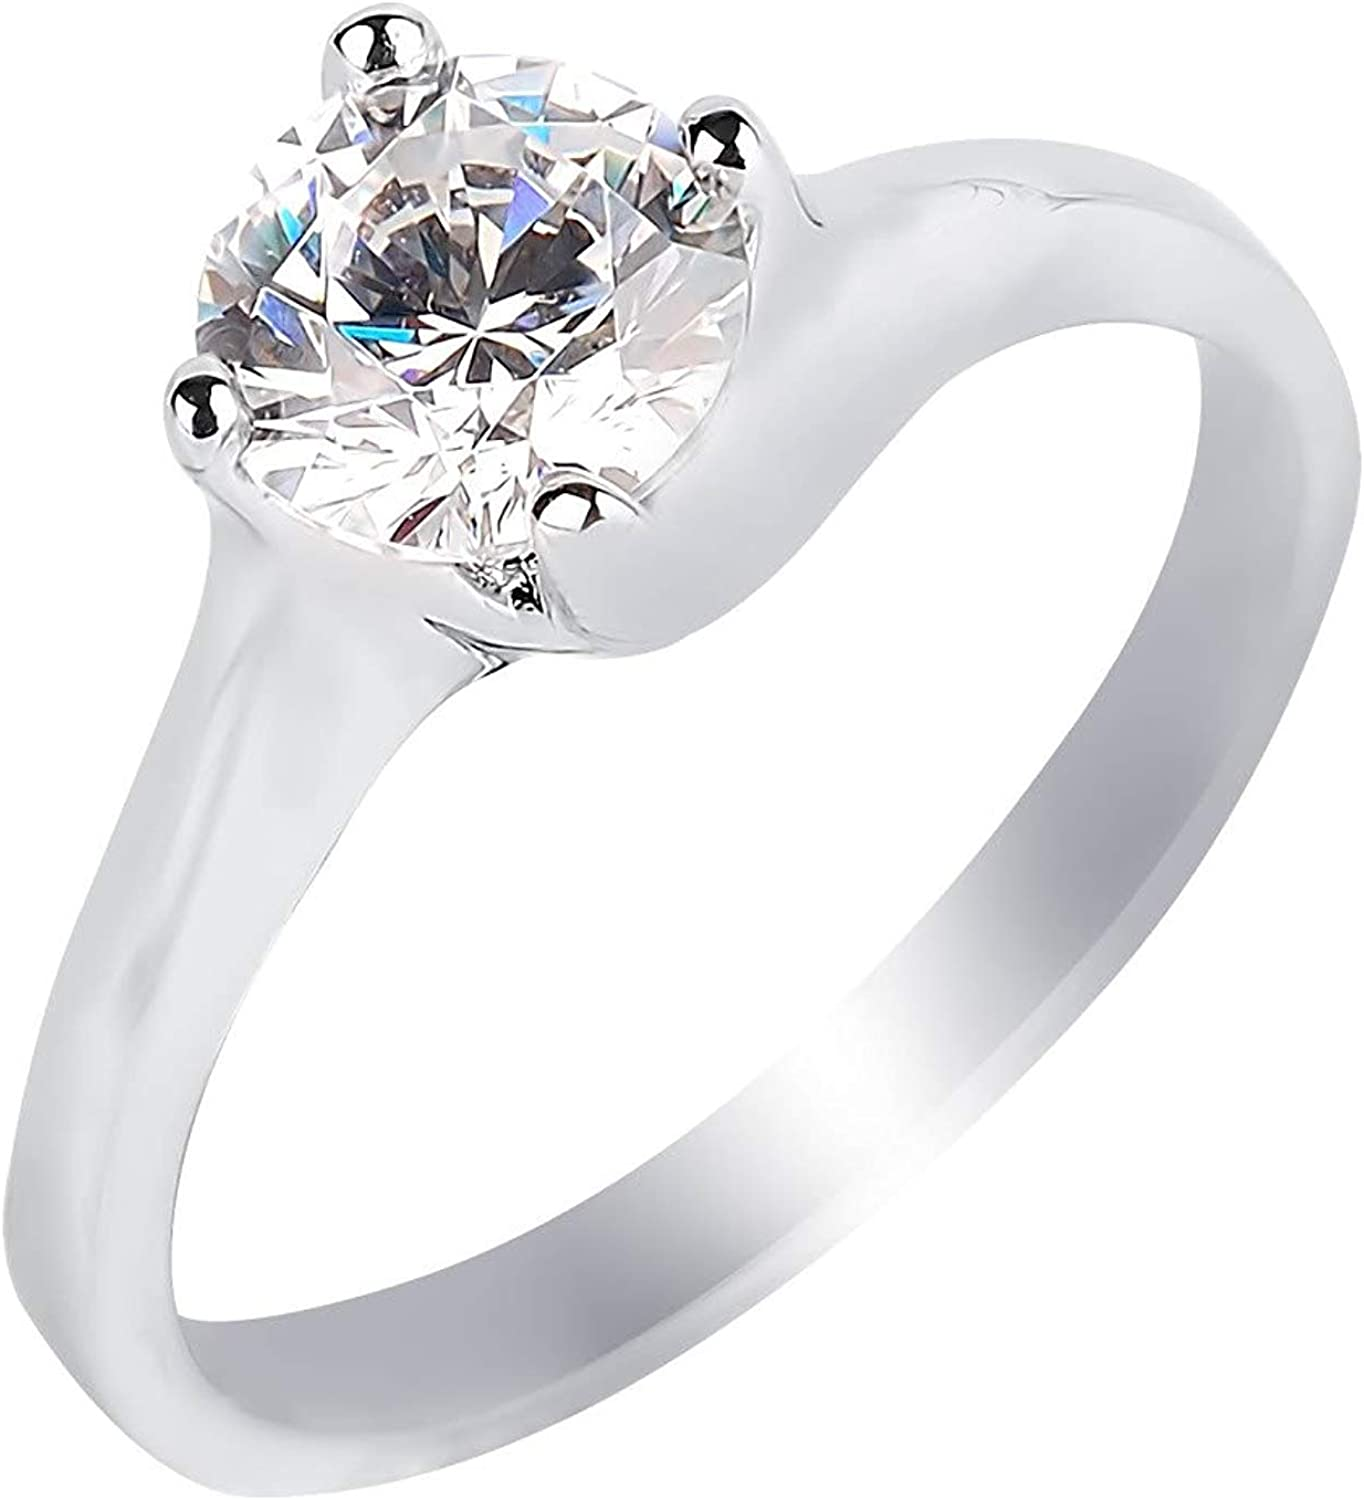 GS /& CO1.80ct Brilliant Cut Solitare Ring in Cubic Zirconia and Sterling Silver 925